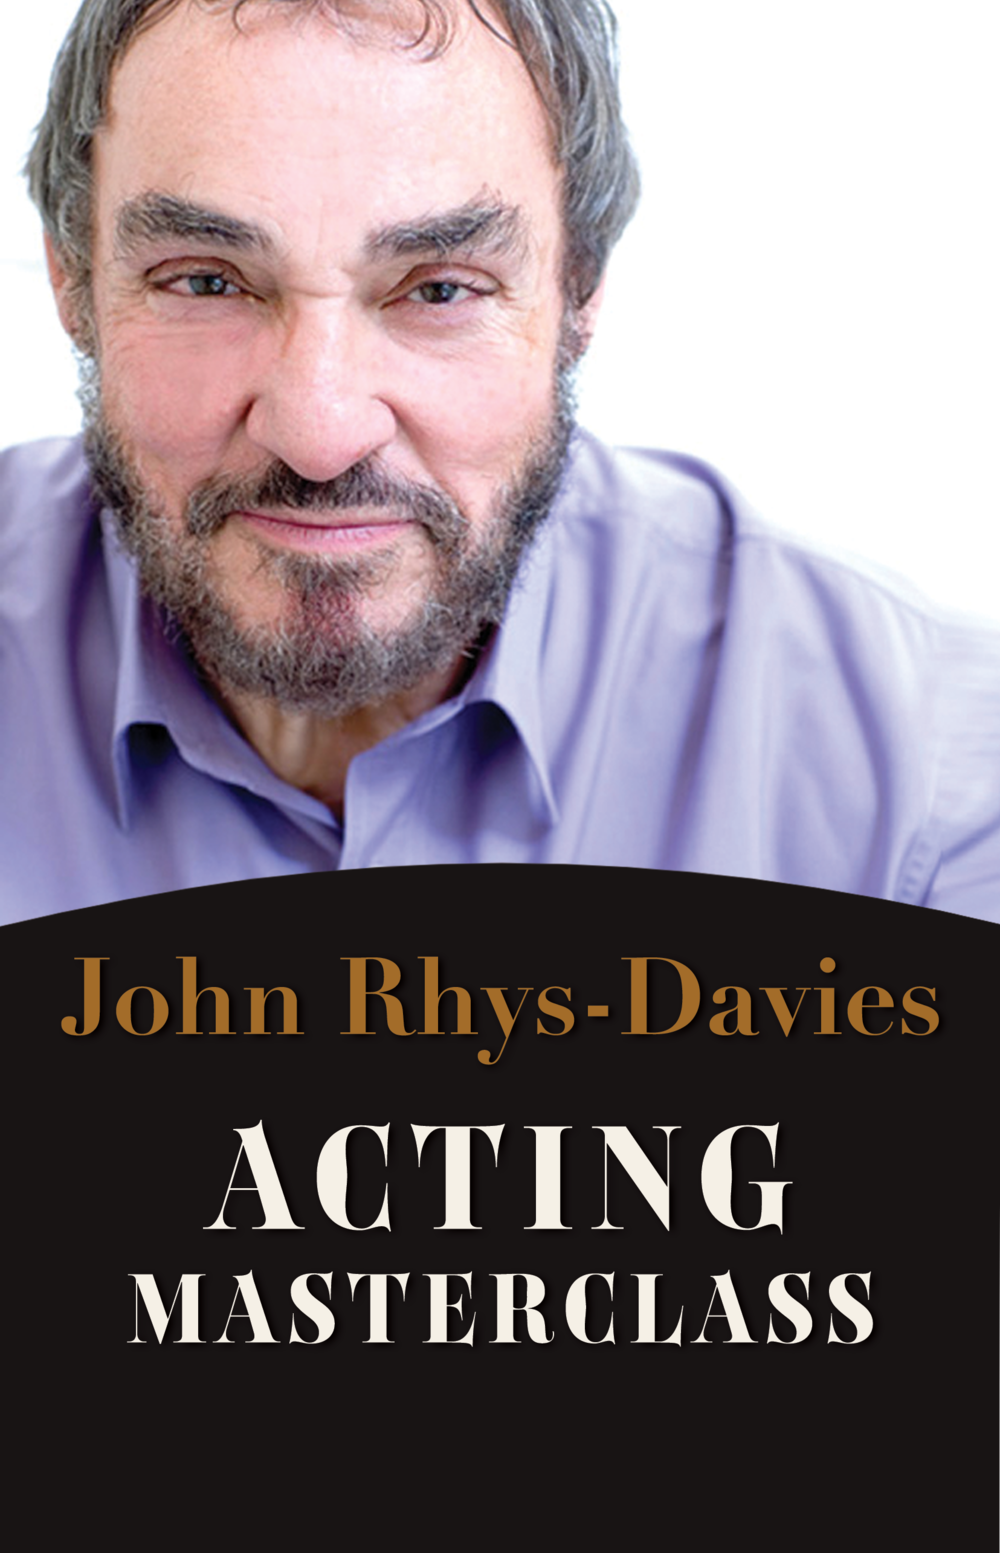 Masterclass with Actor John Rhys-Davies July 15.png